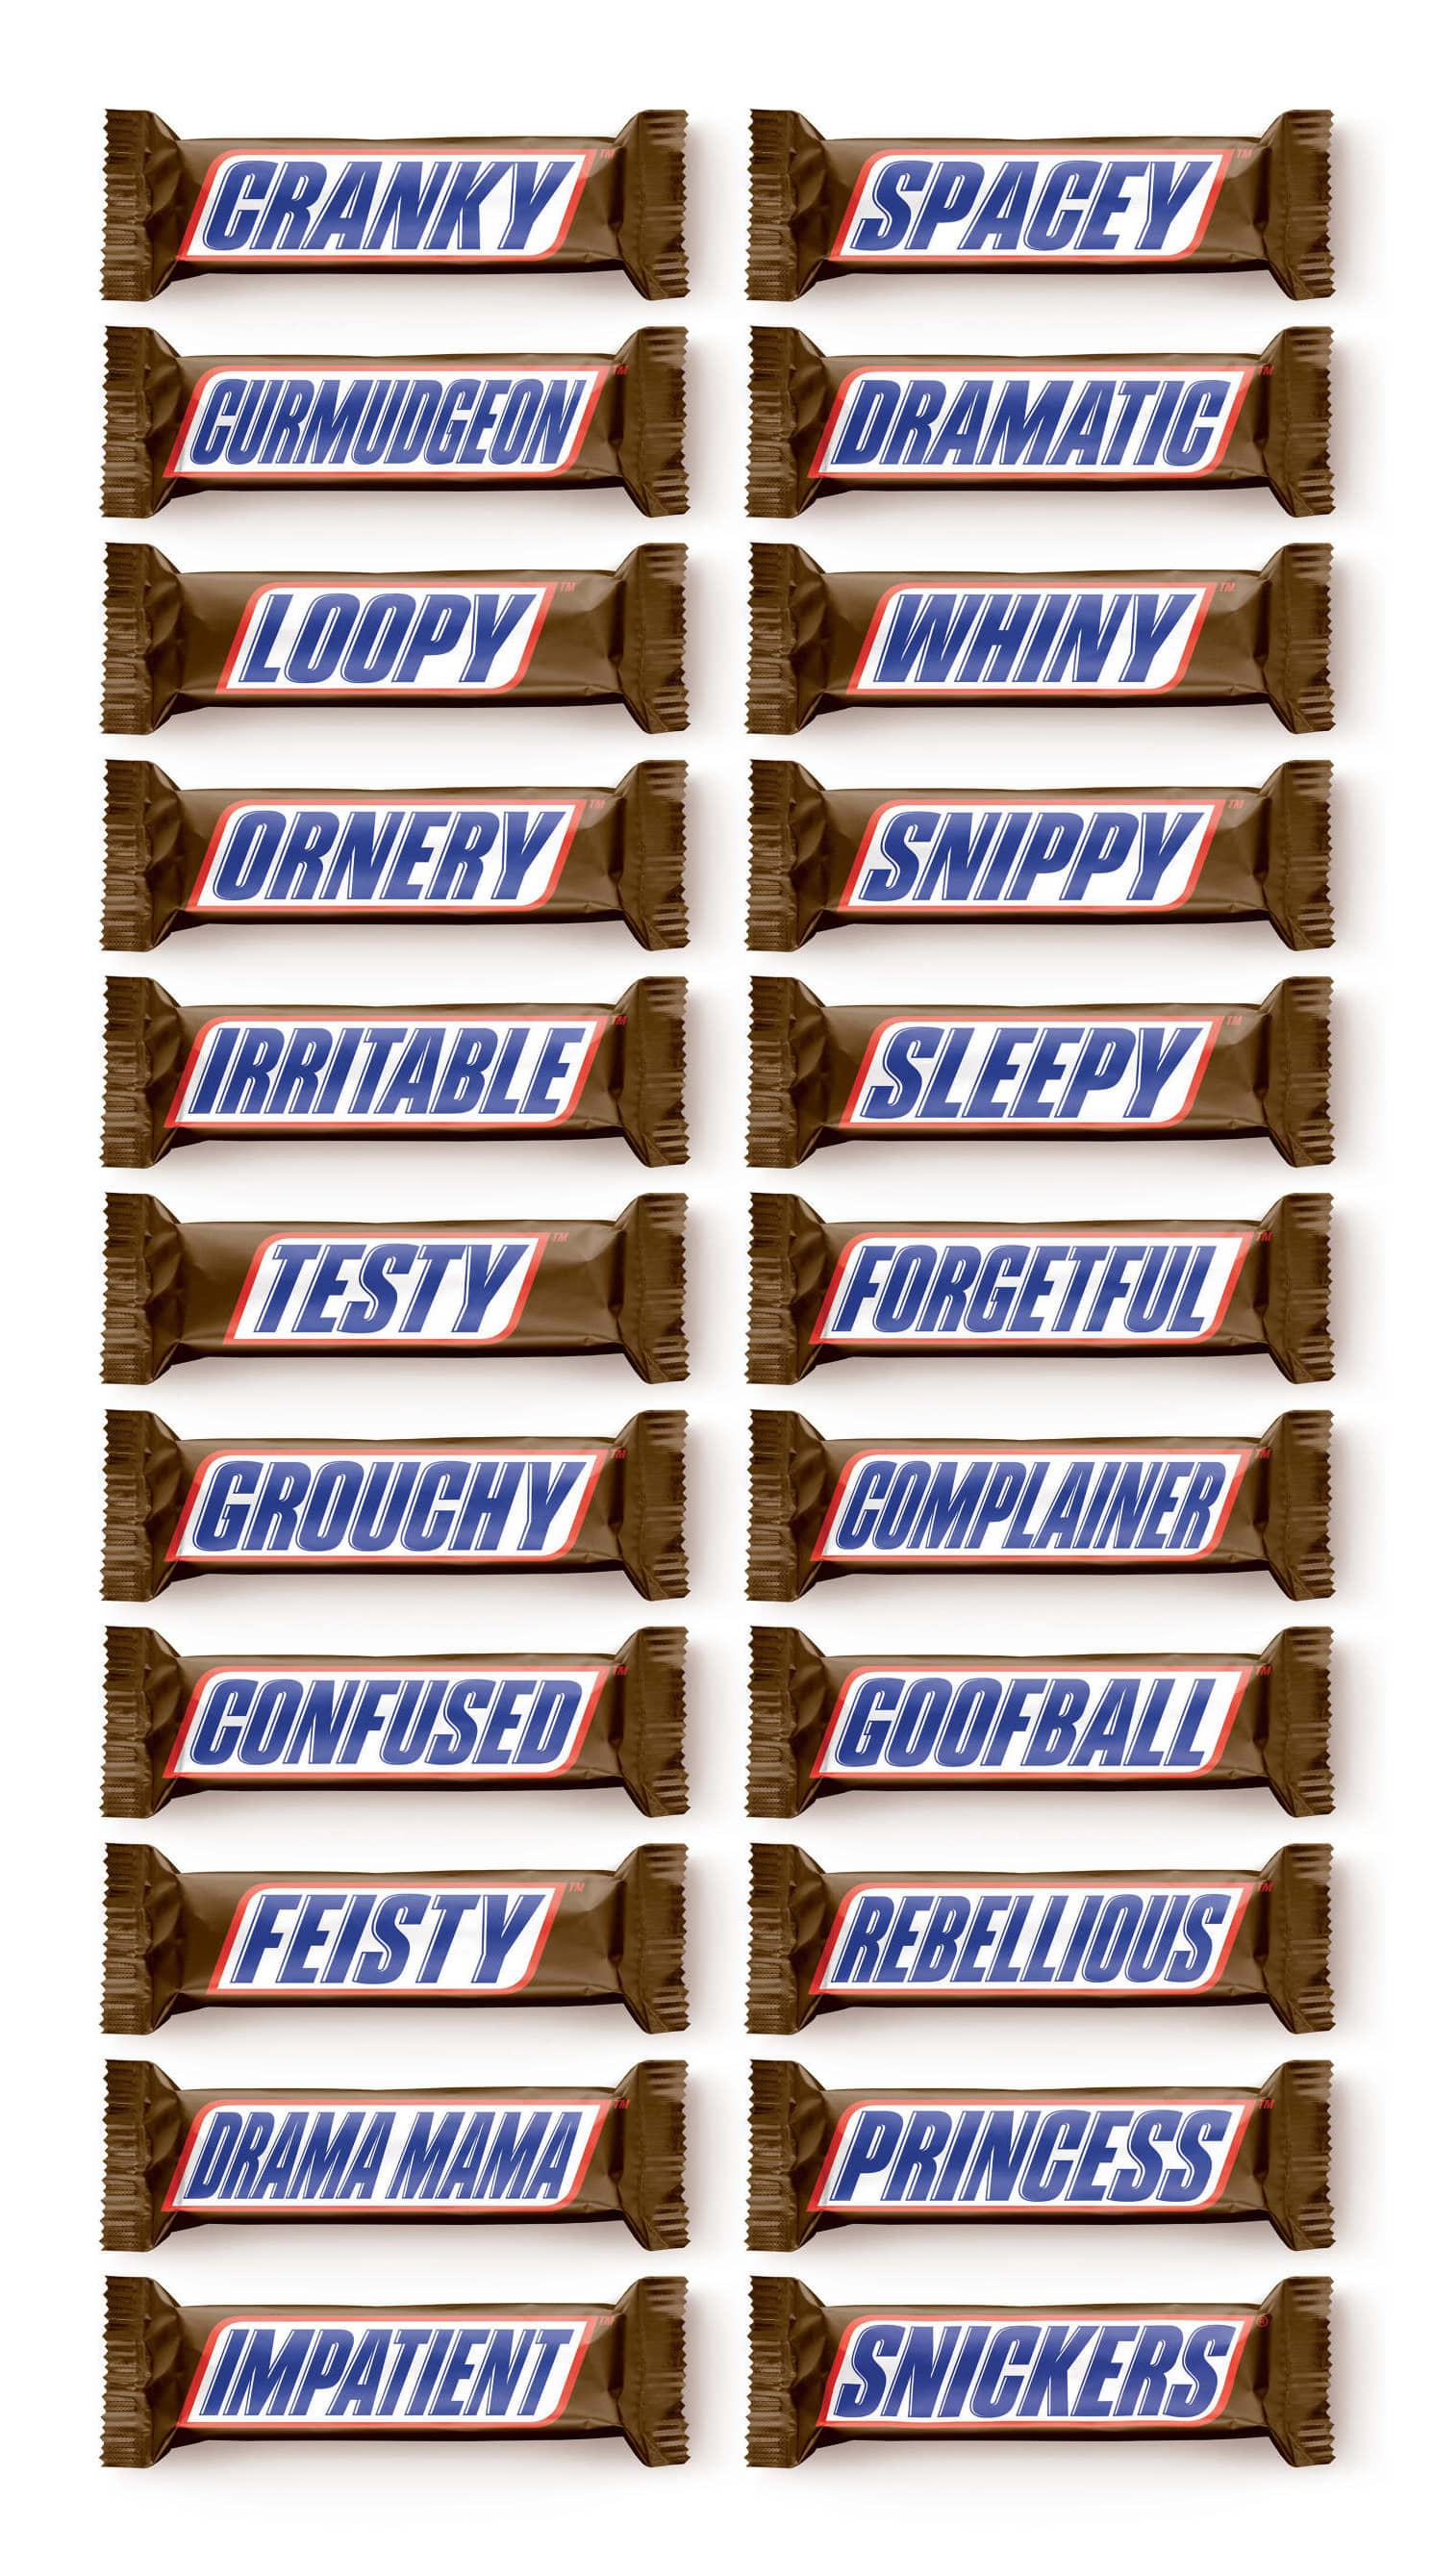 Snickers - Hunger Bars